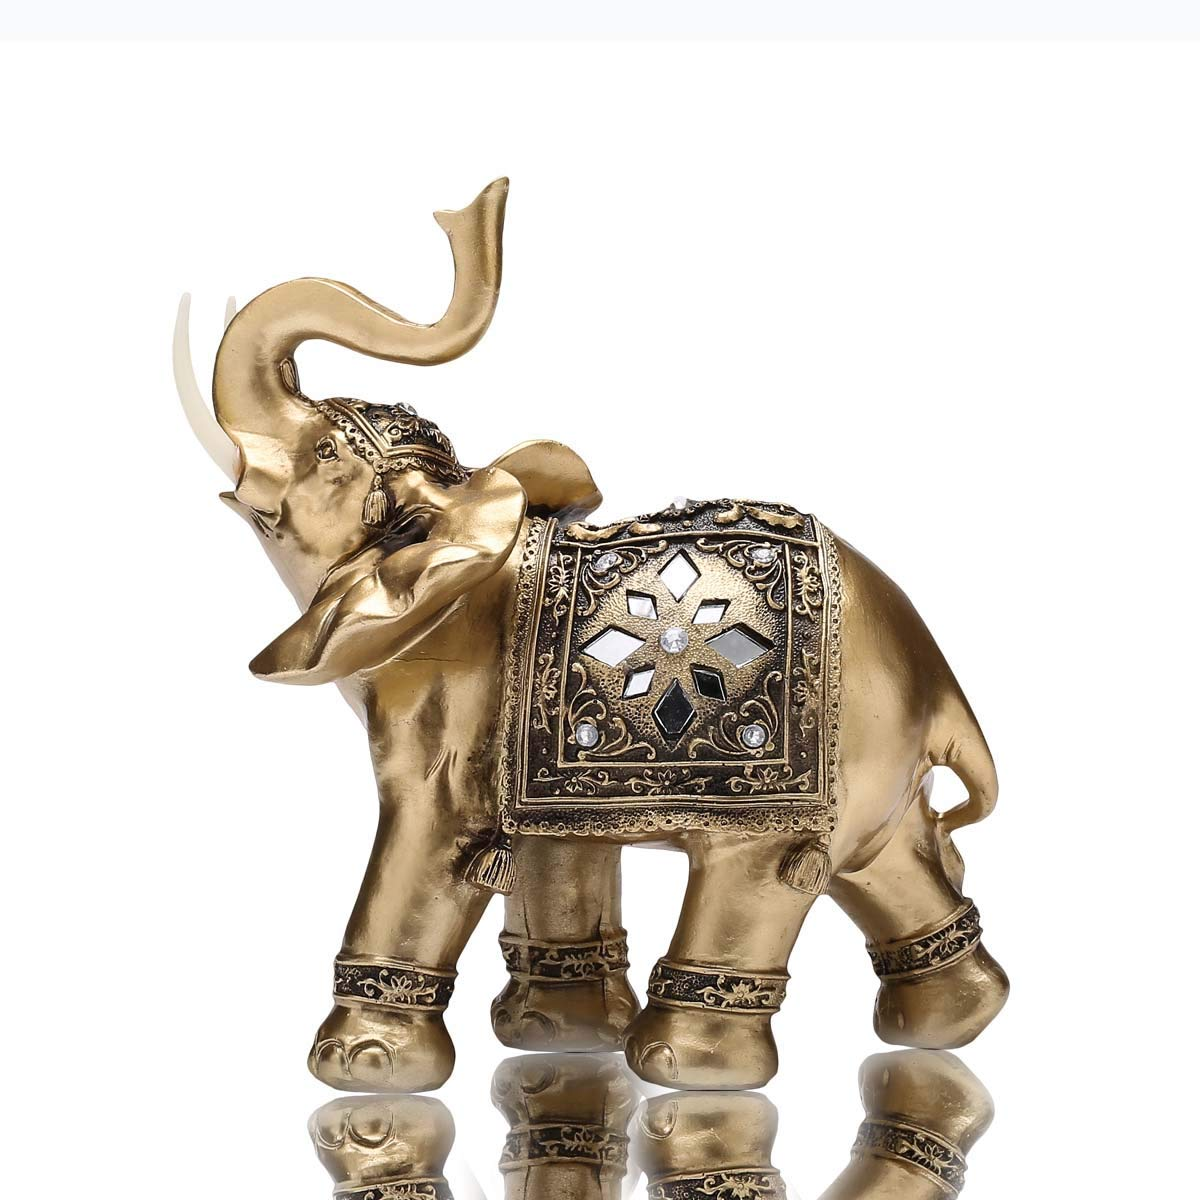 TOUCH MISS Golden Thai Elephant with Trunk Raised Collectible Figurines Large